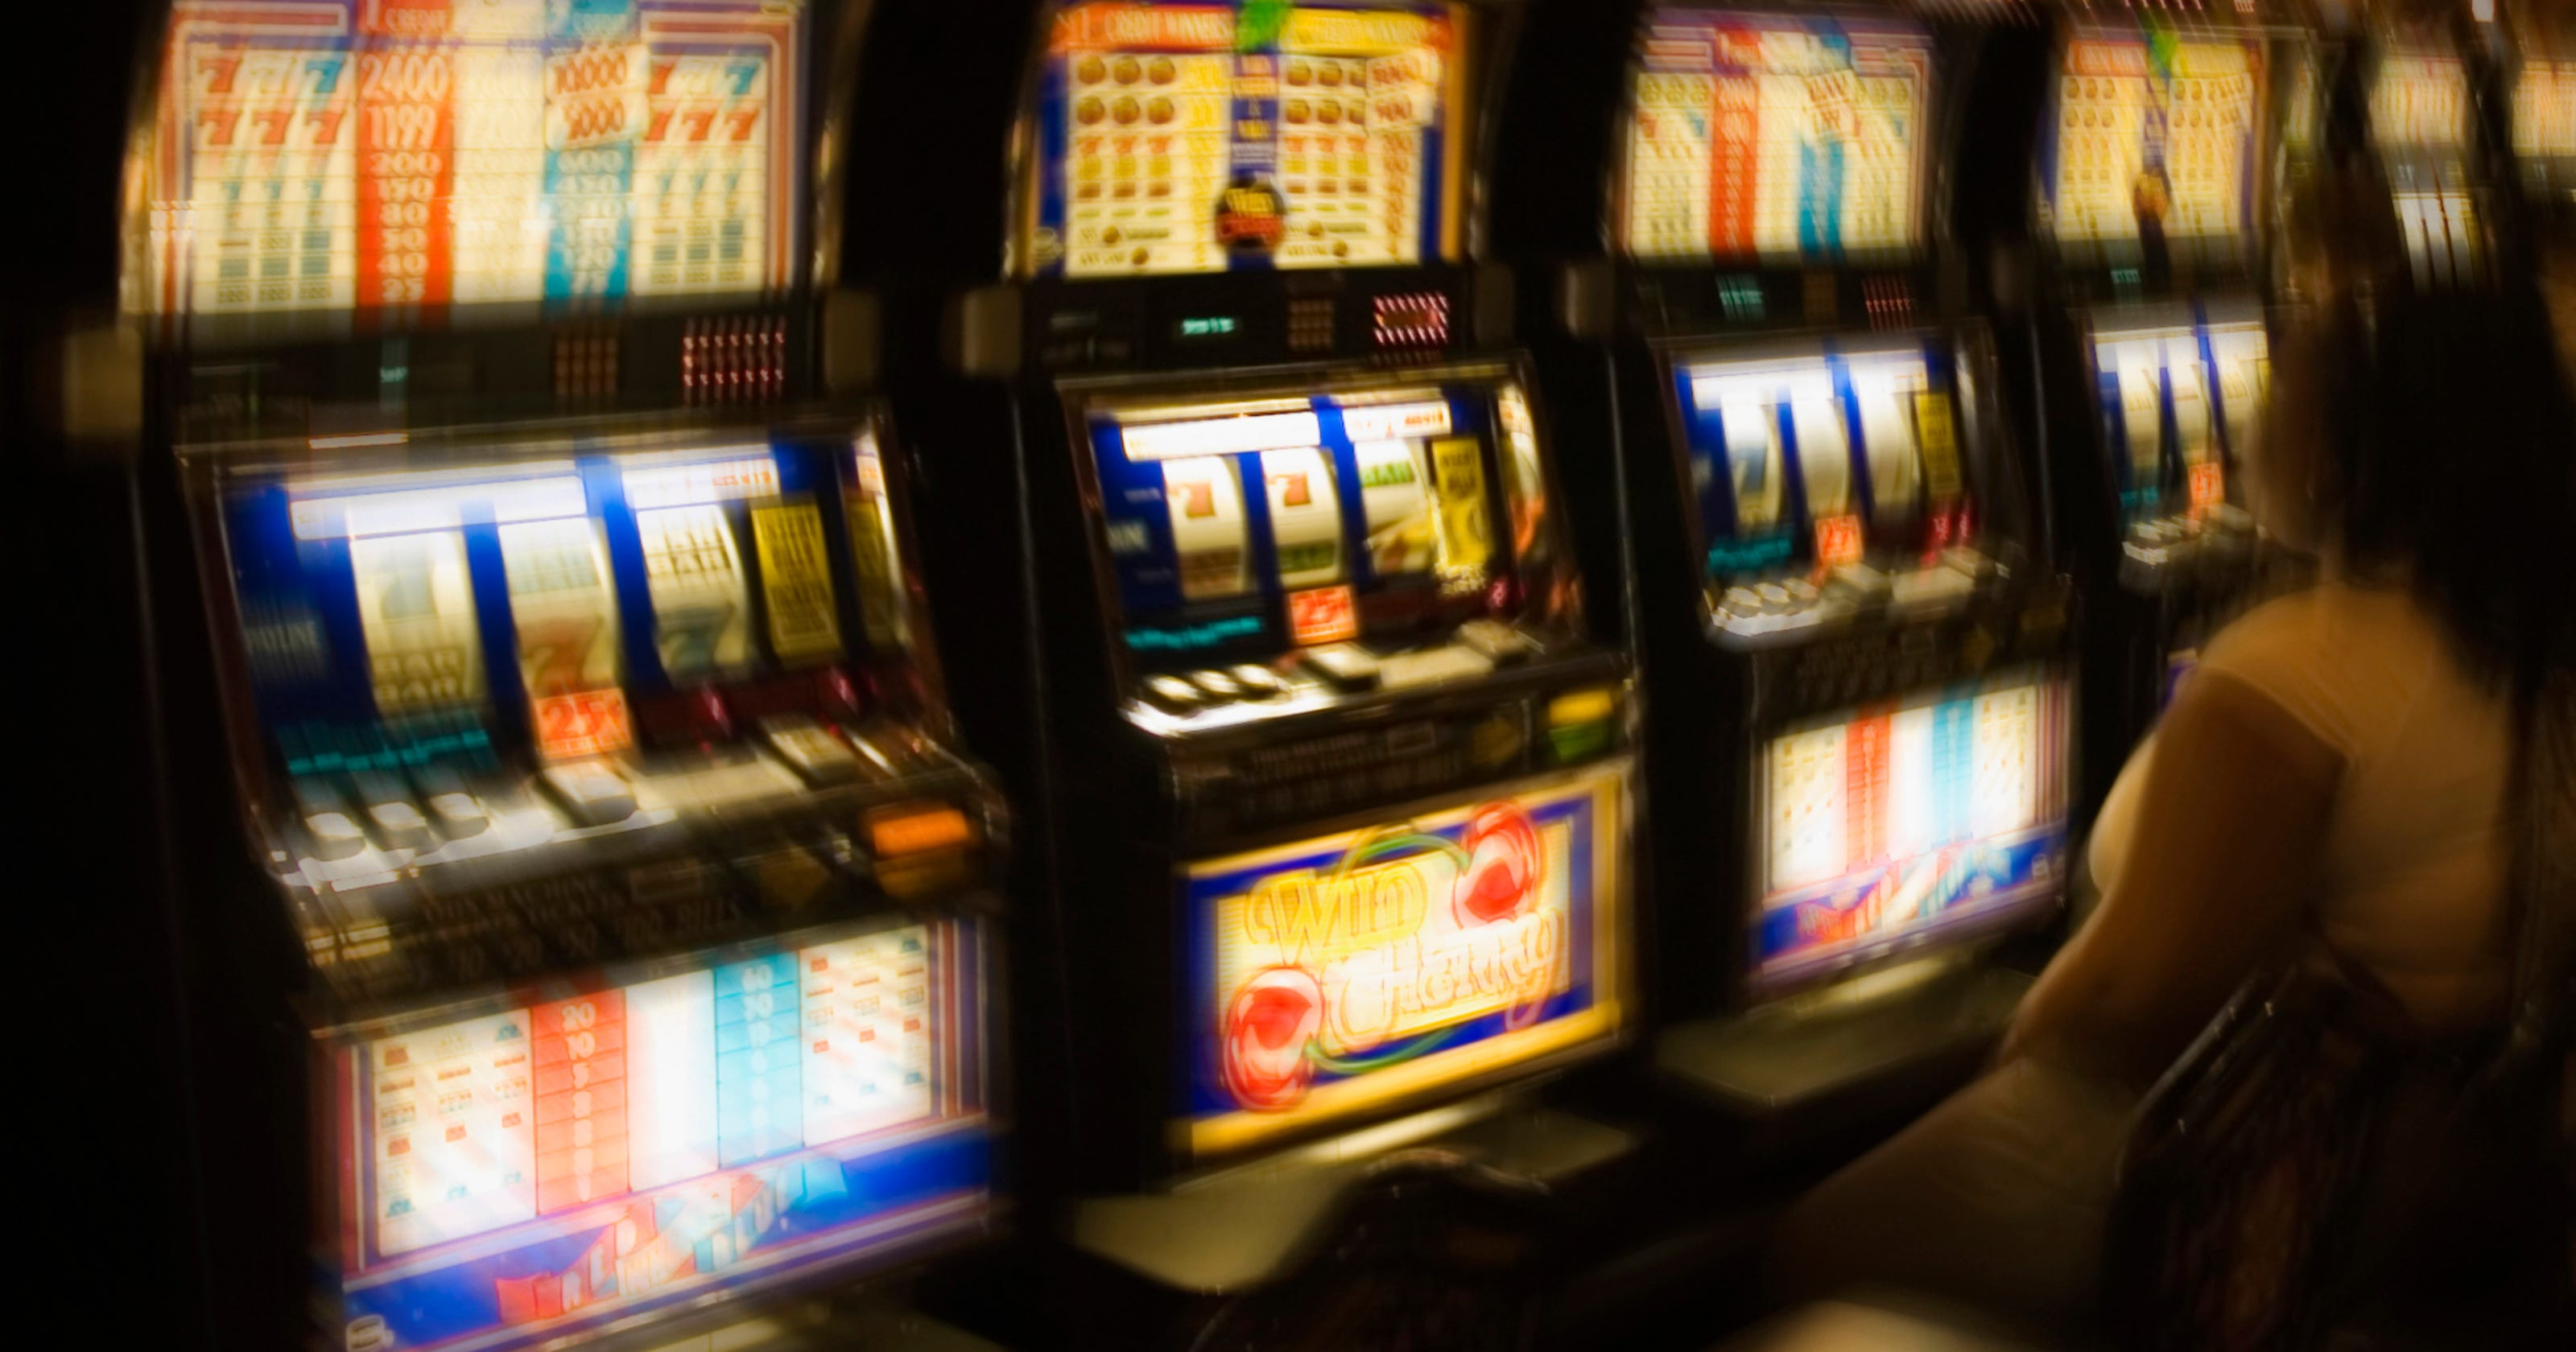 Gambling problems can lead to skyrocketing losses and